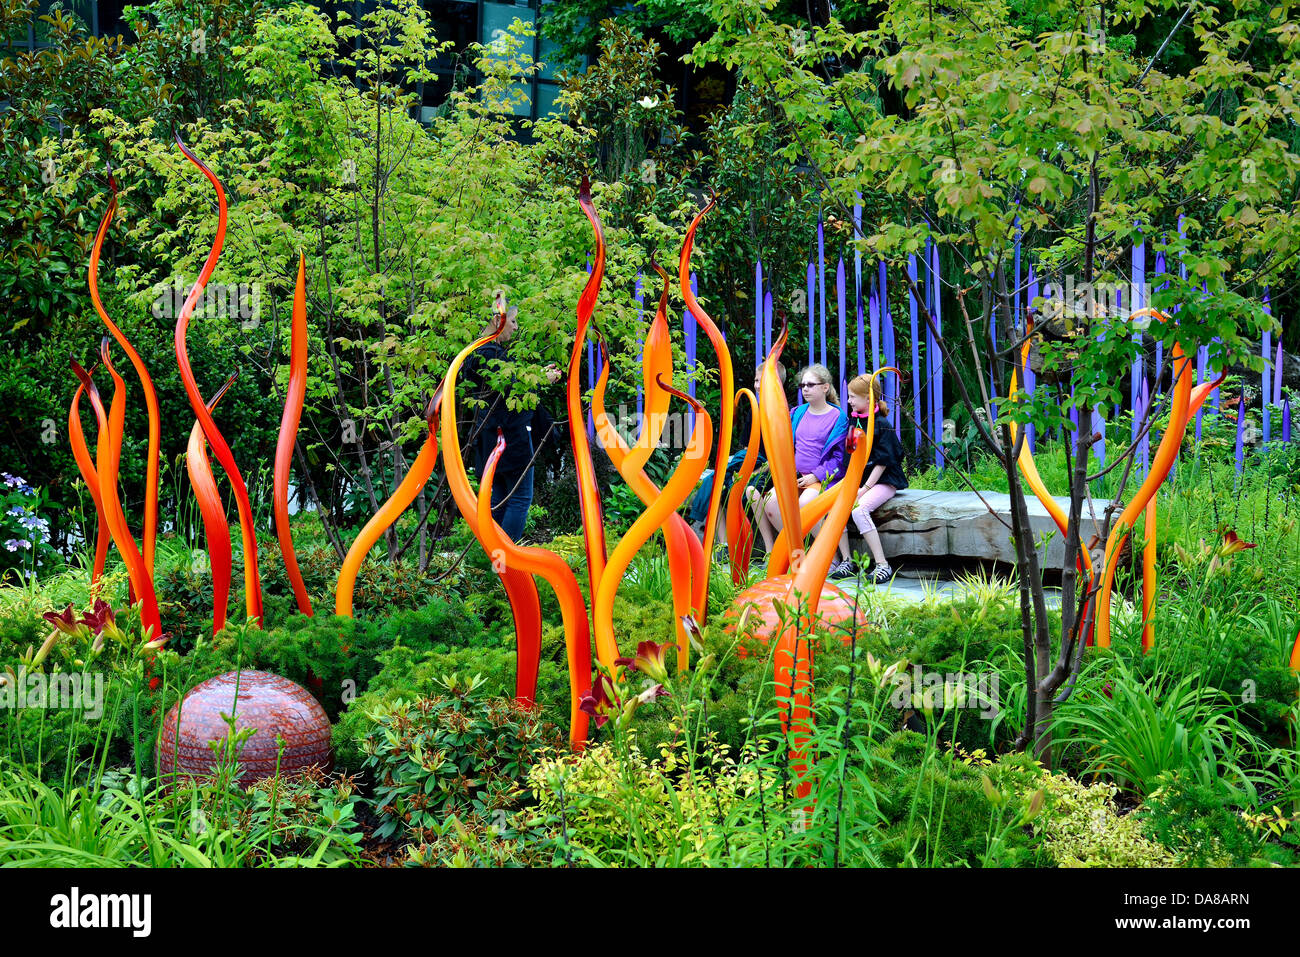 Chihuly Art For Kids